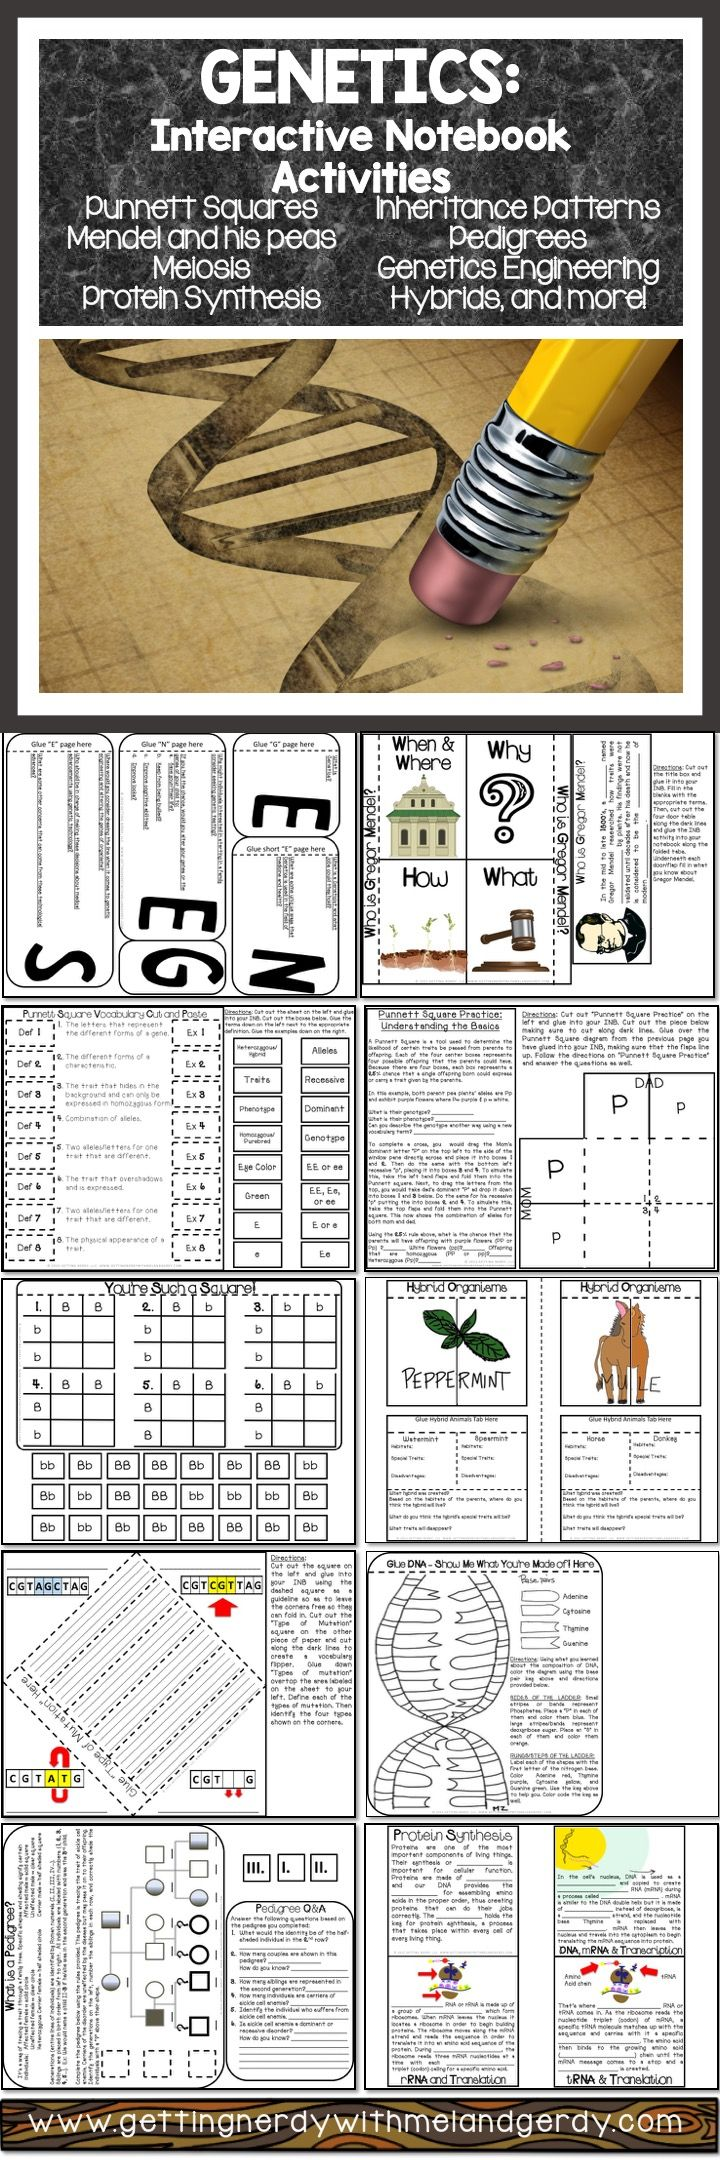 Over 20 Science Interactive Notebook activities covering Genetics, Punnett Squares, DNA, Hybrids & More!